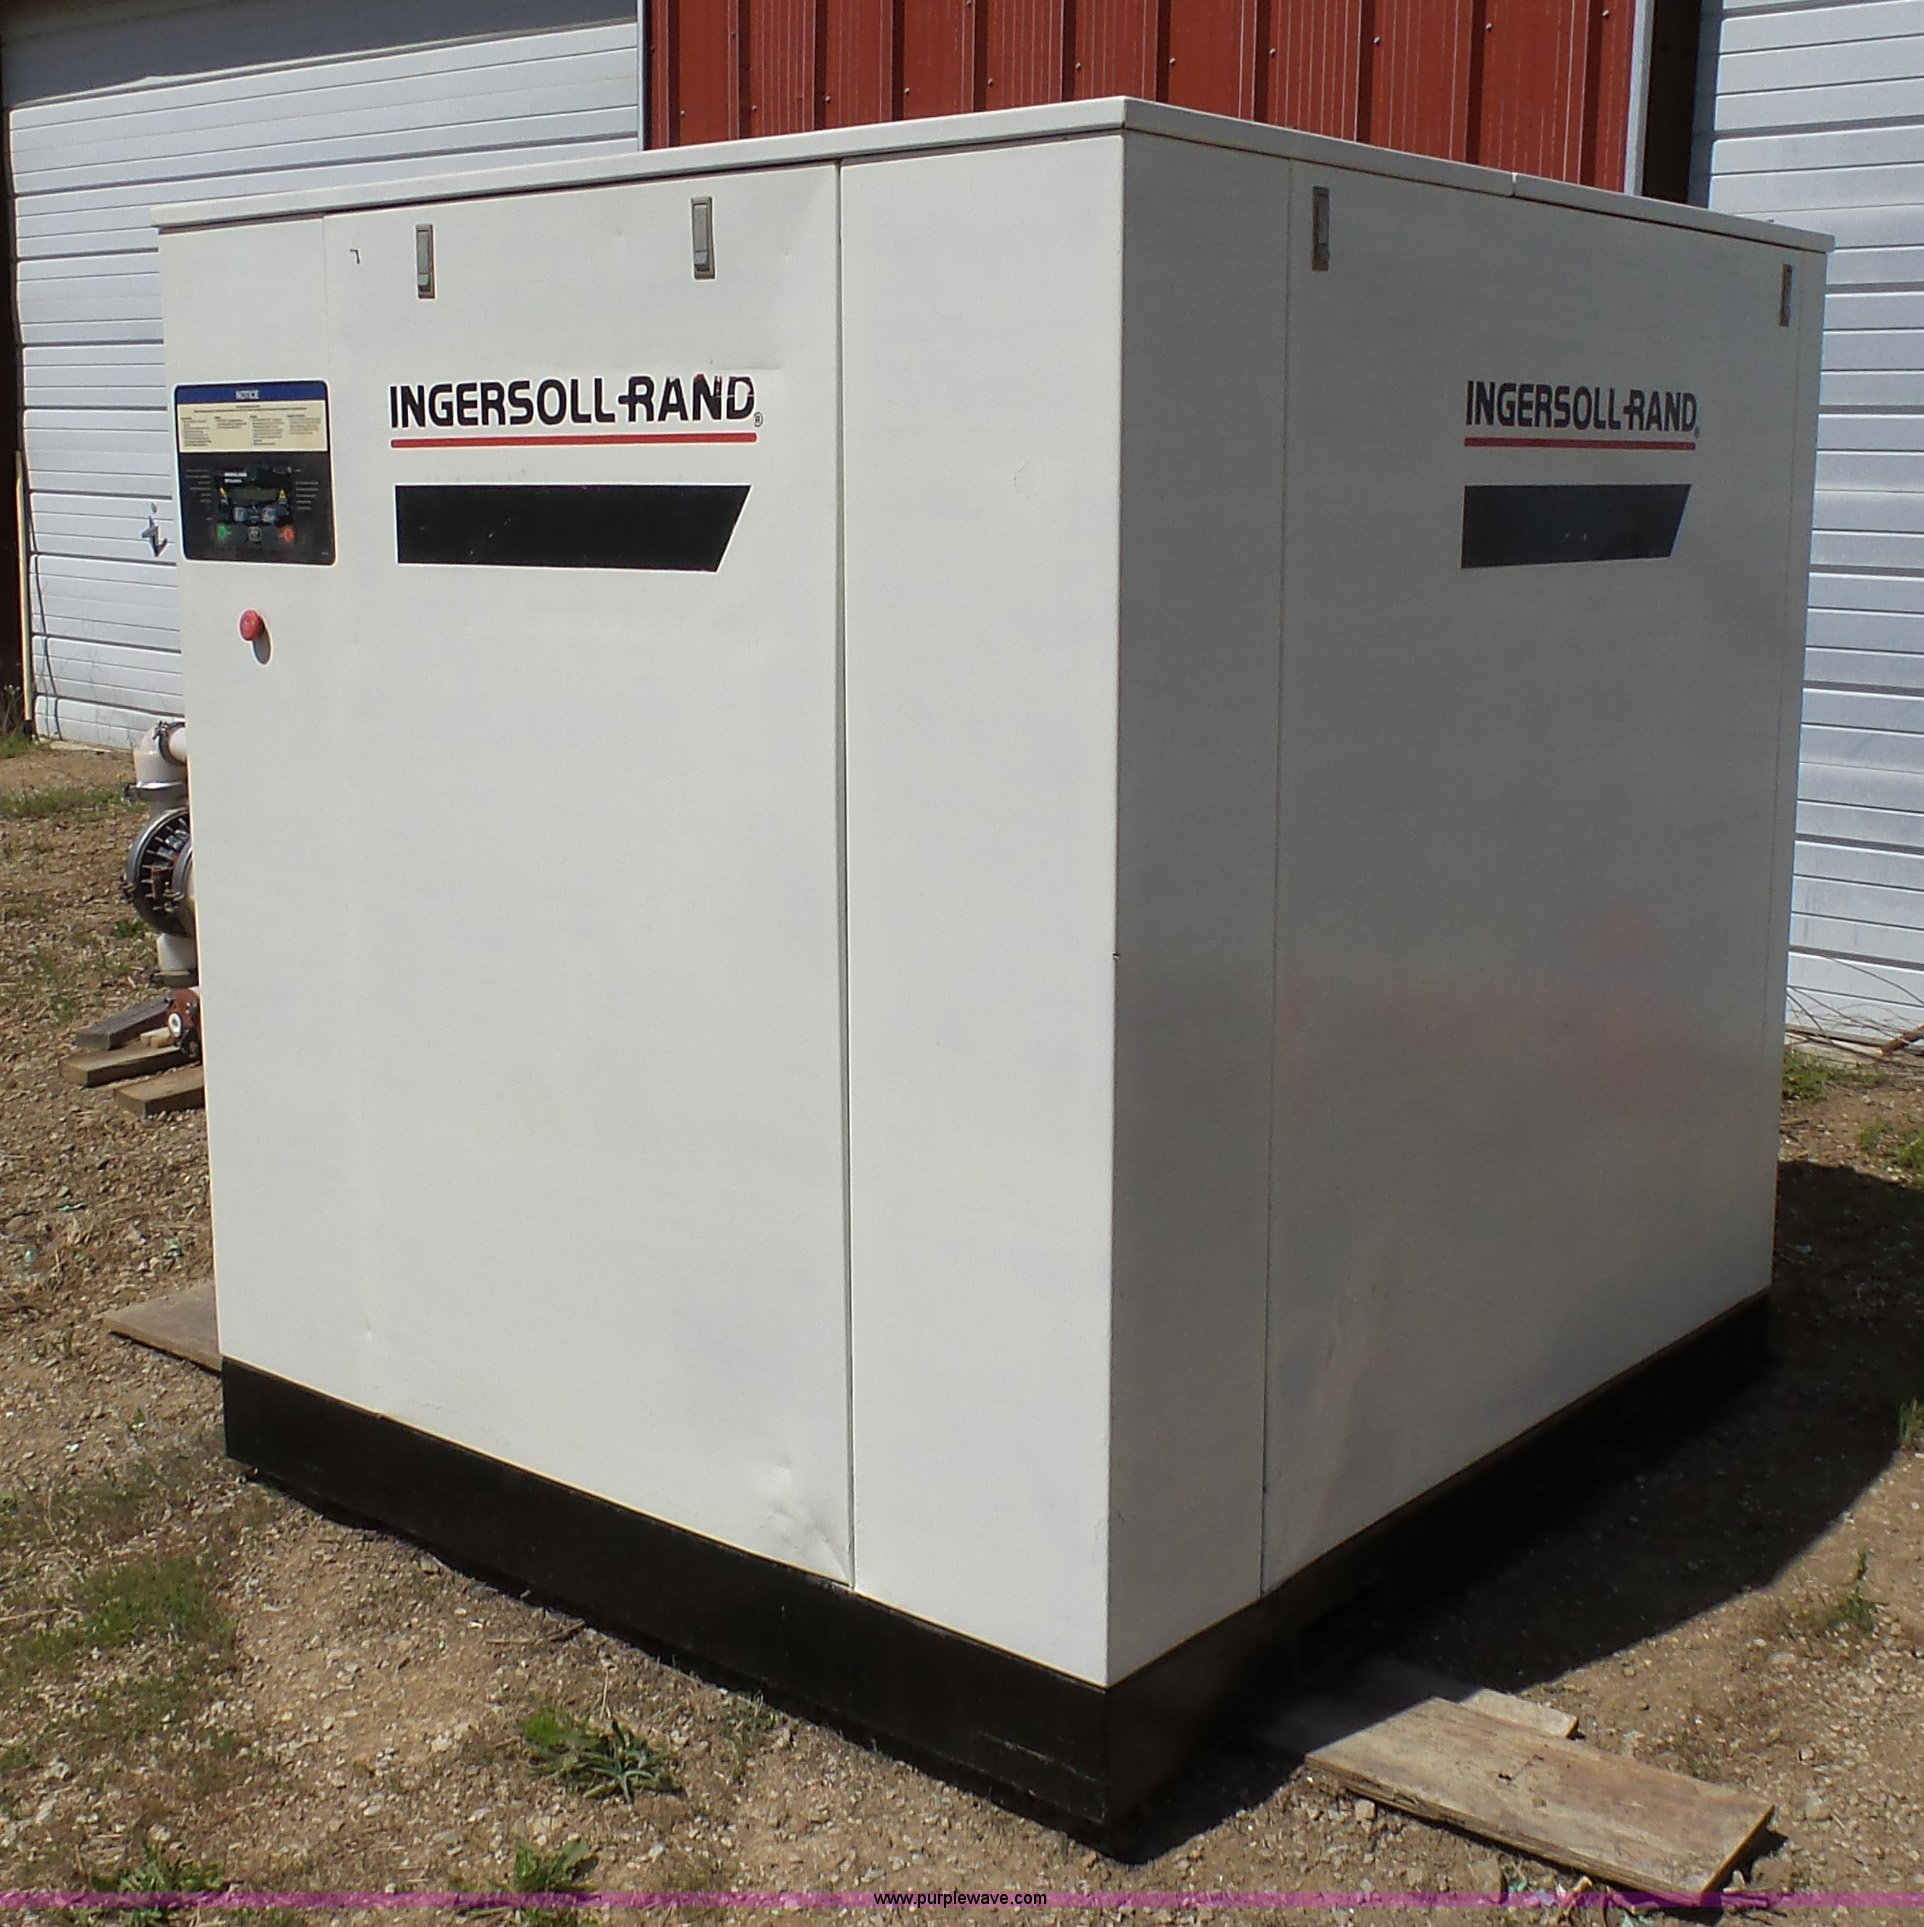 ... Ingersoll Rand SSR-EPE50 rotary screw air compressor Full size in new  window ...